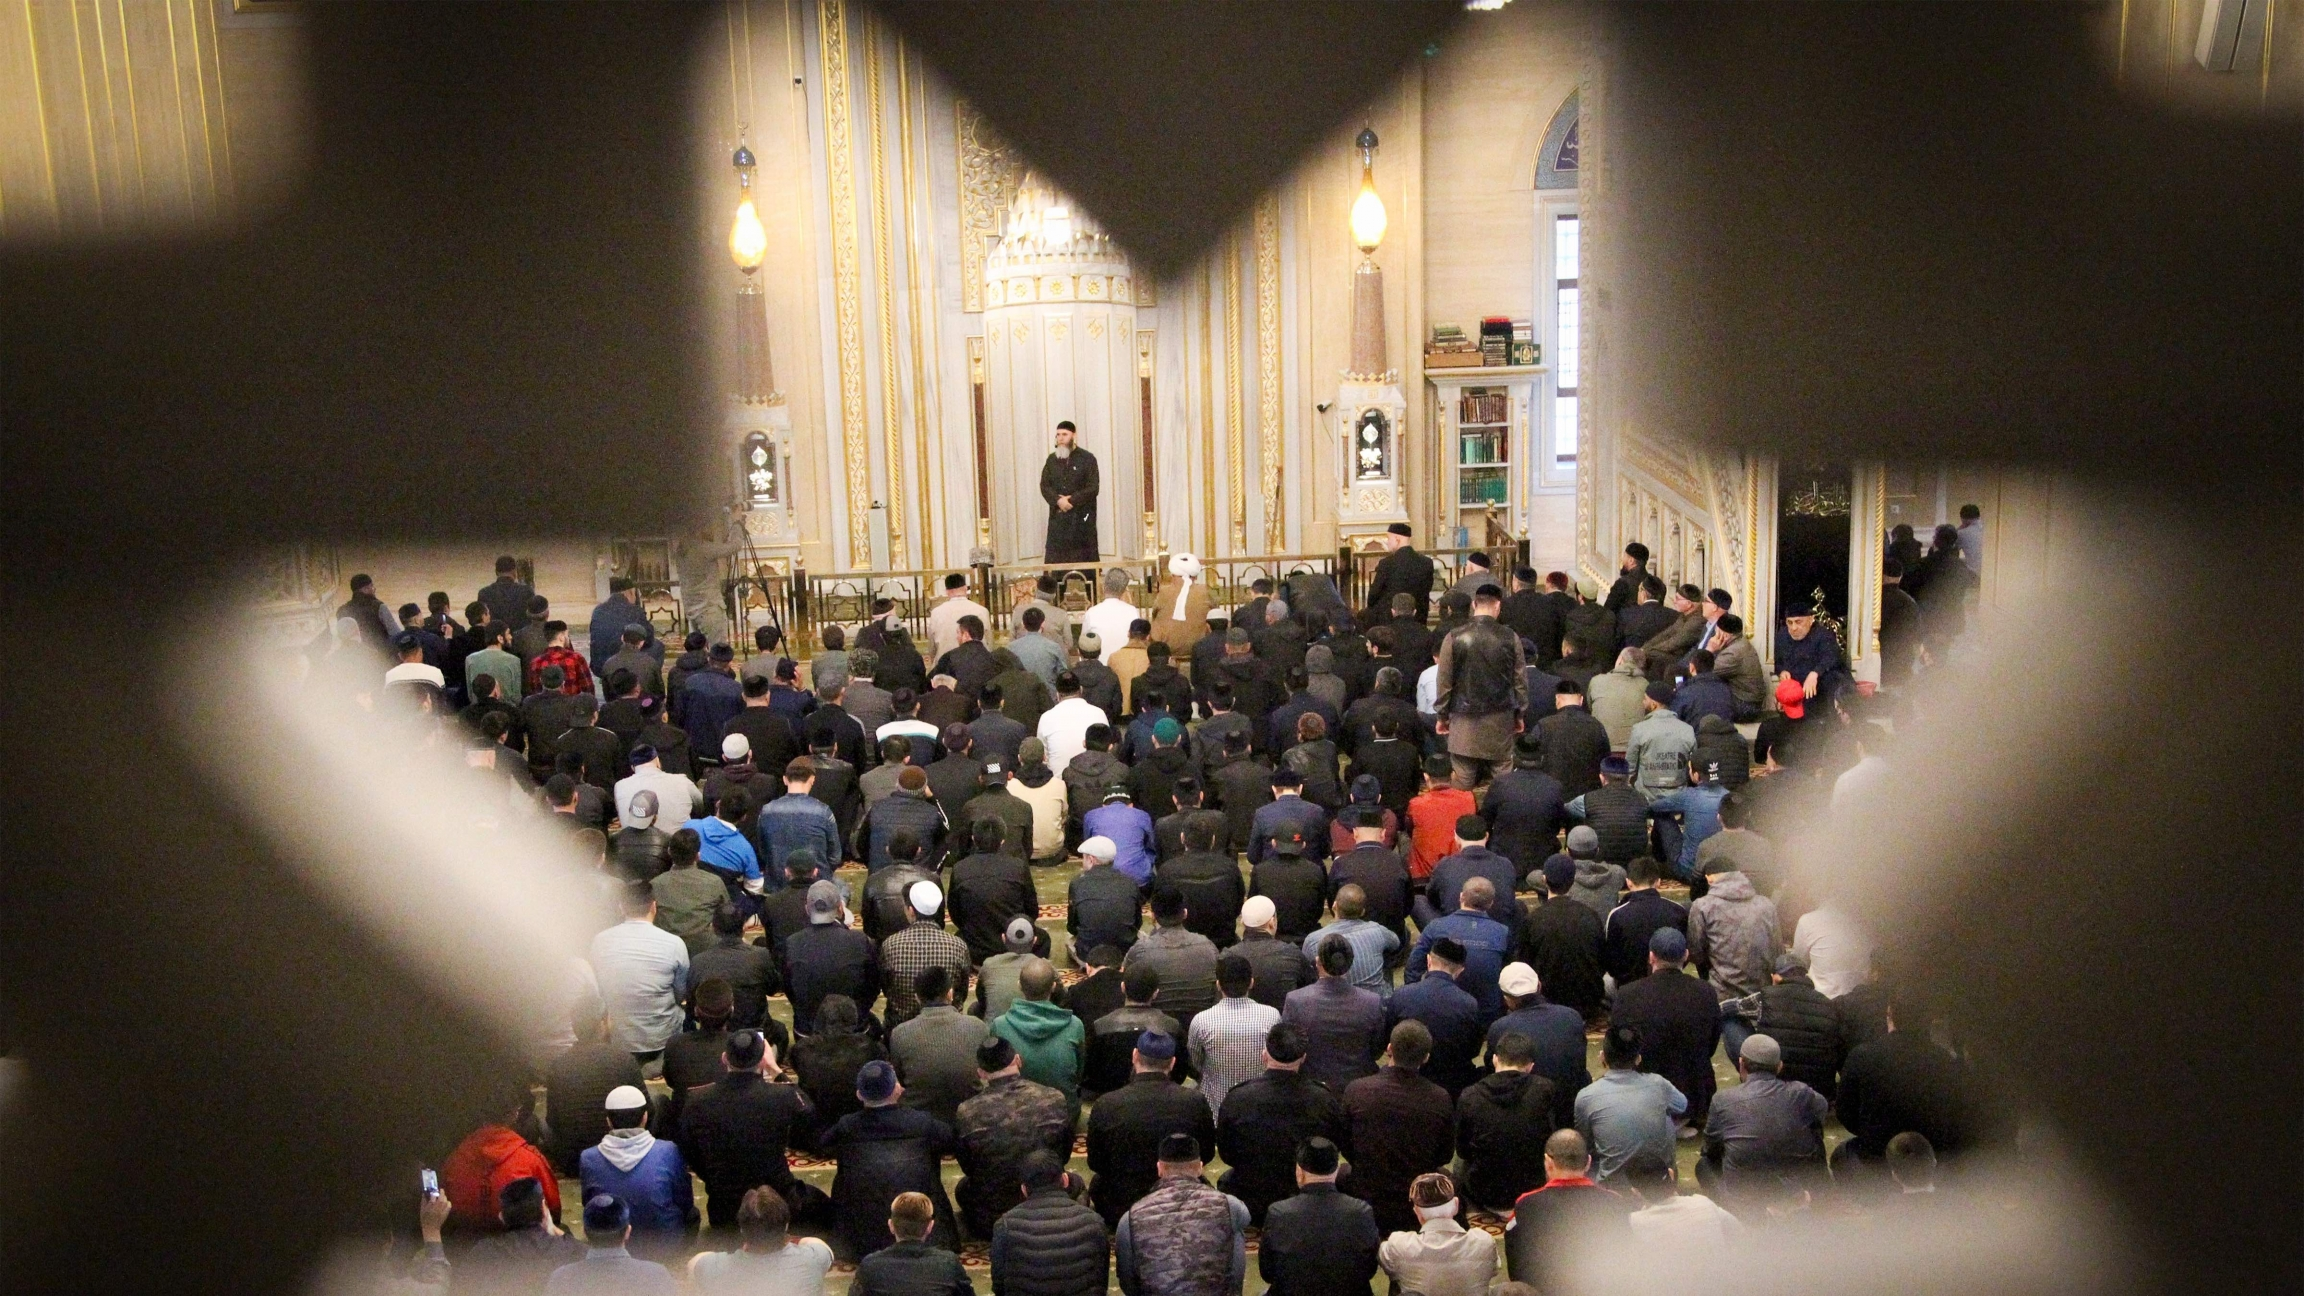 Muslims pray in a mosque during celebrations of Eid al-Fitr holiday, a feast celebrated by Muslims worldwide, in Grozny, Russia, on Thursday, May 13, 2021.